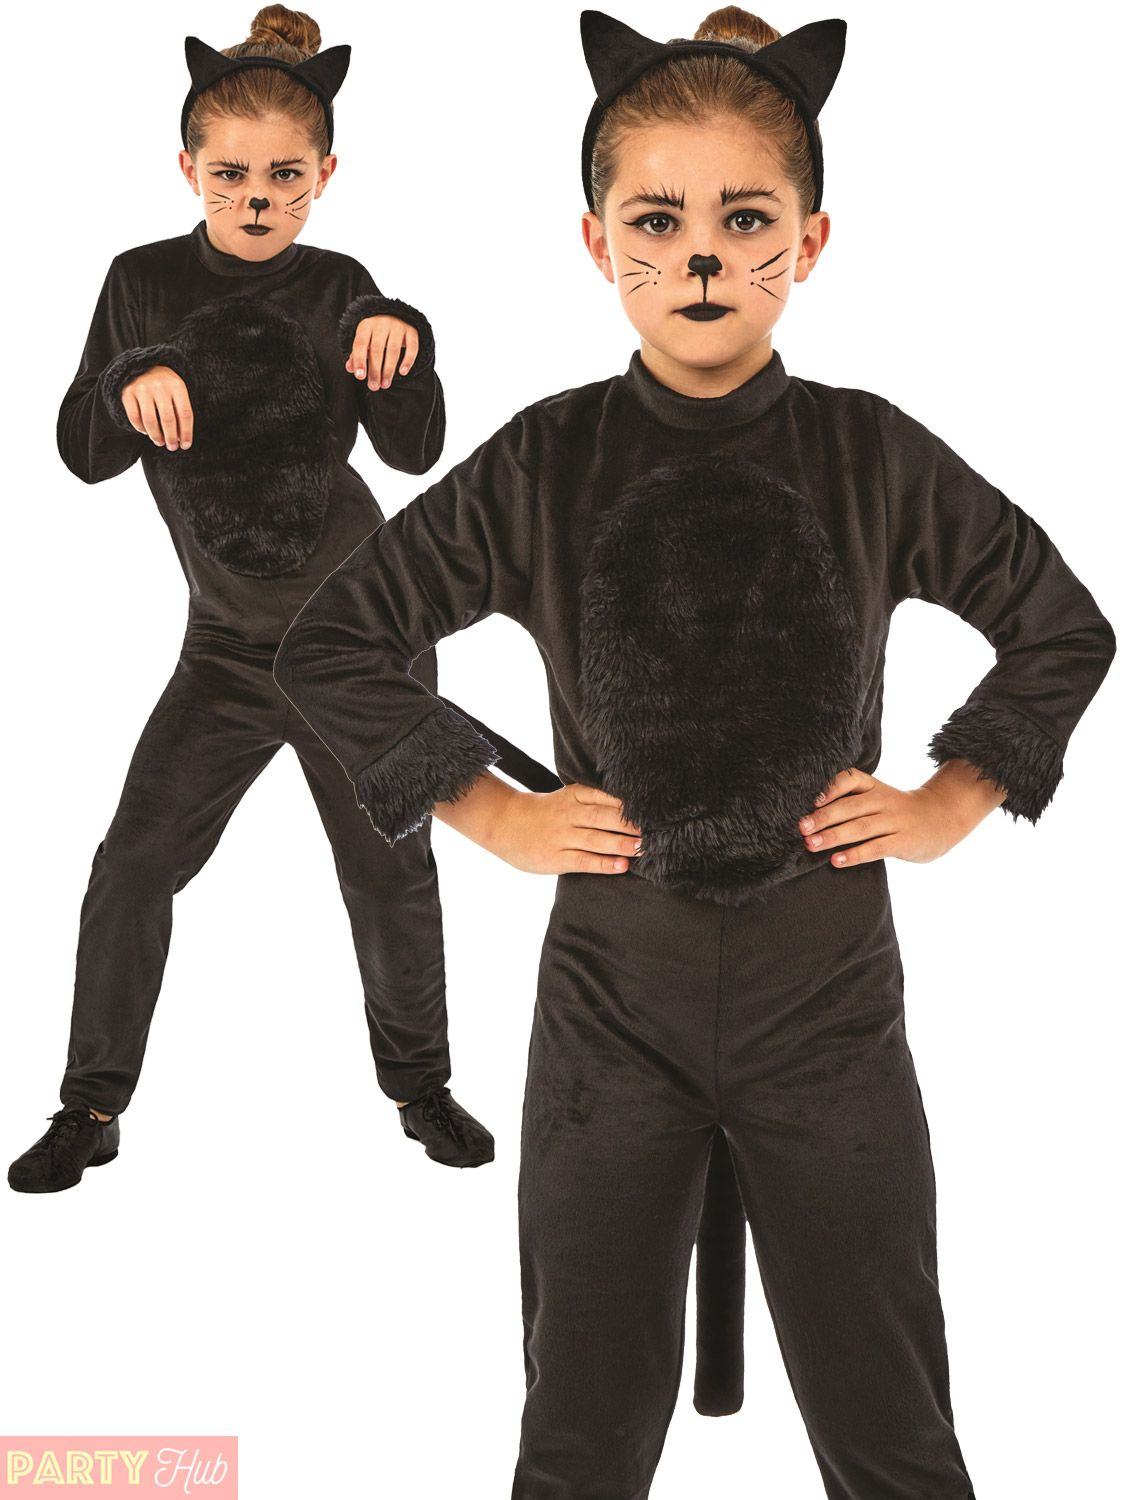 Details about Childs Black Cat Costume Girls Halloween